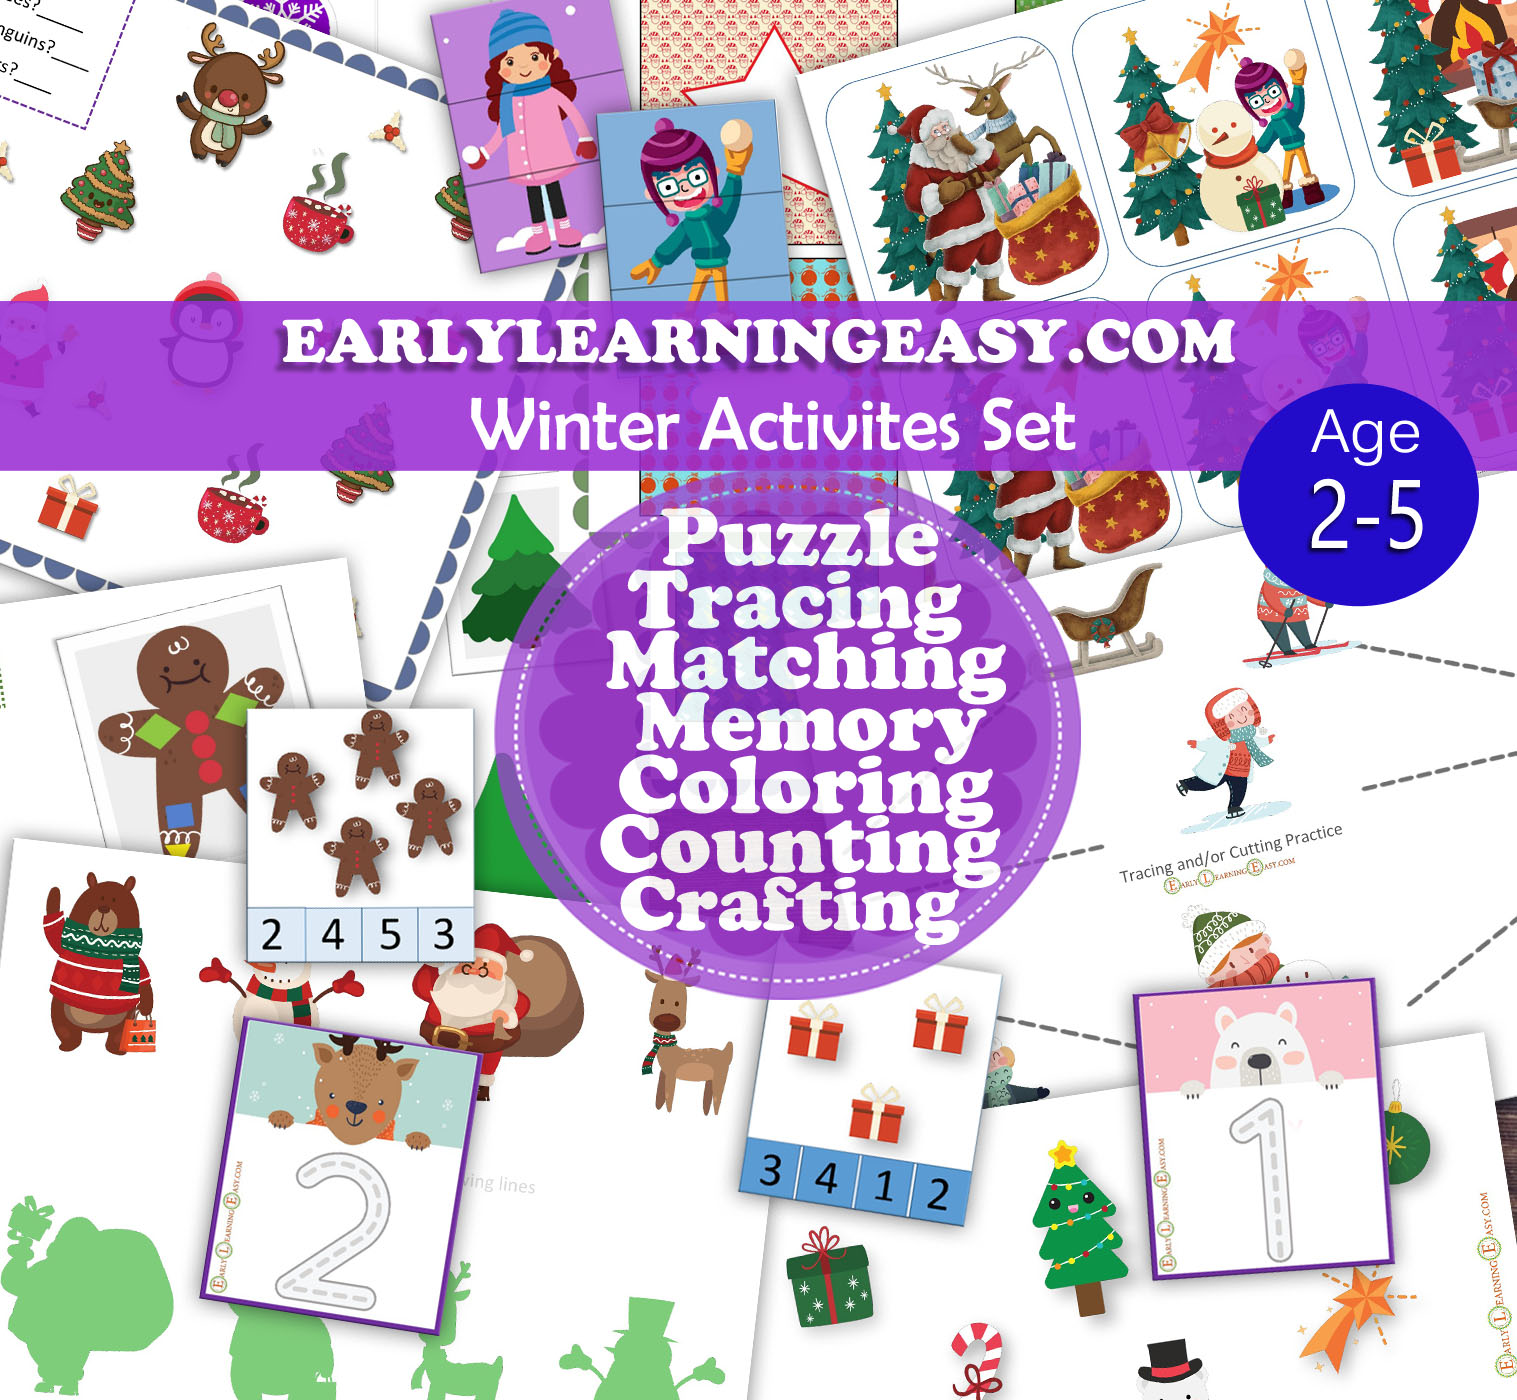 Winter Activities Set For Toddlers Pre K Age 2 5